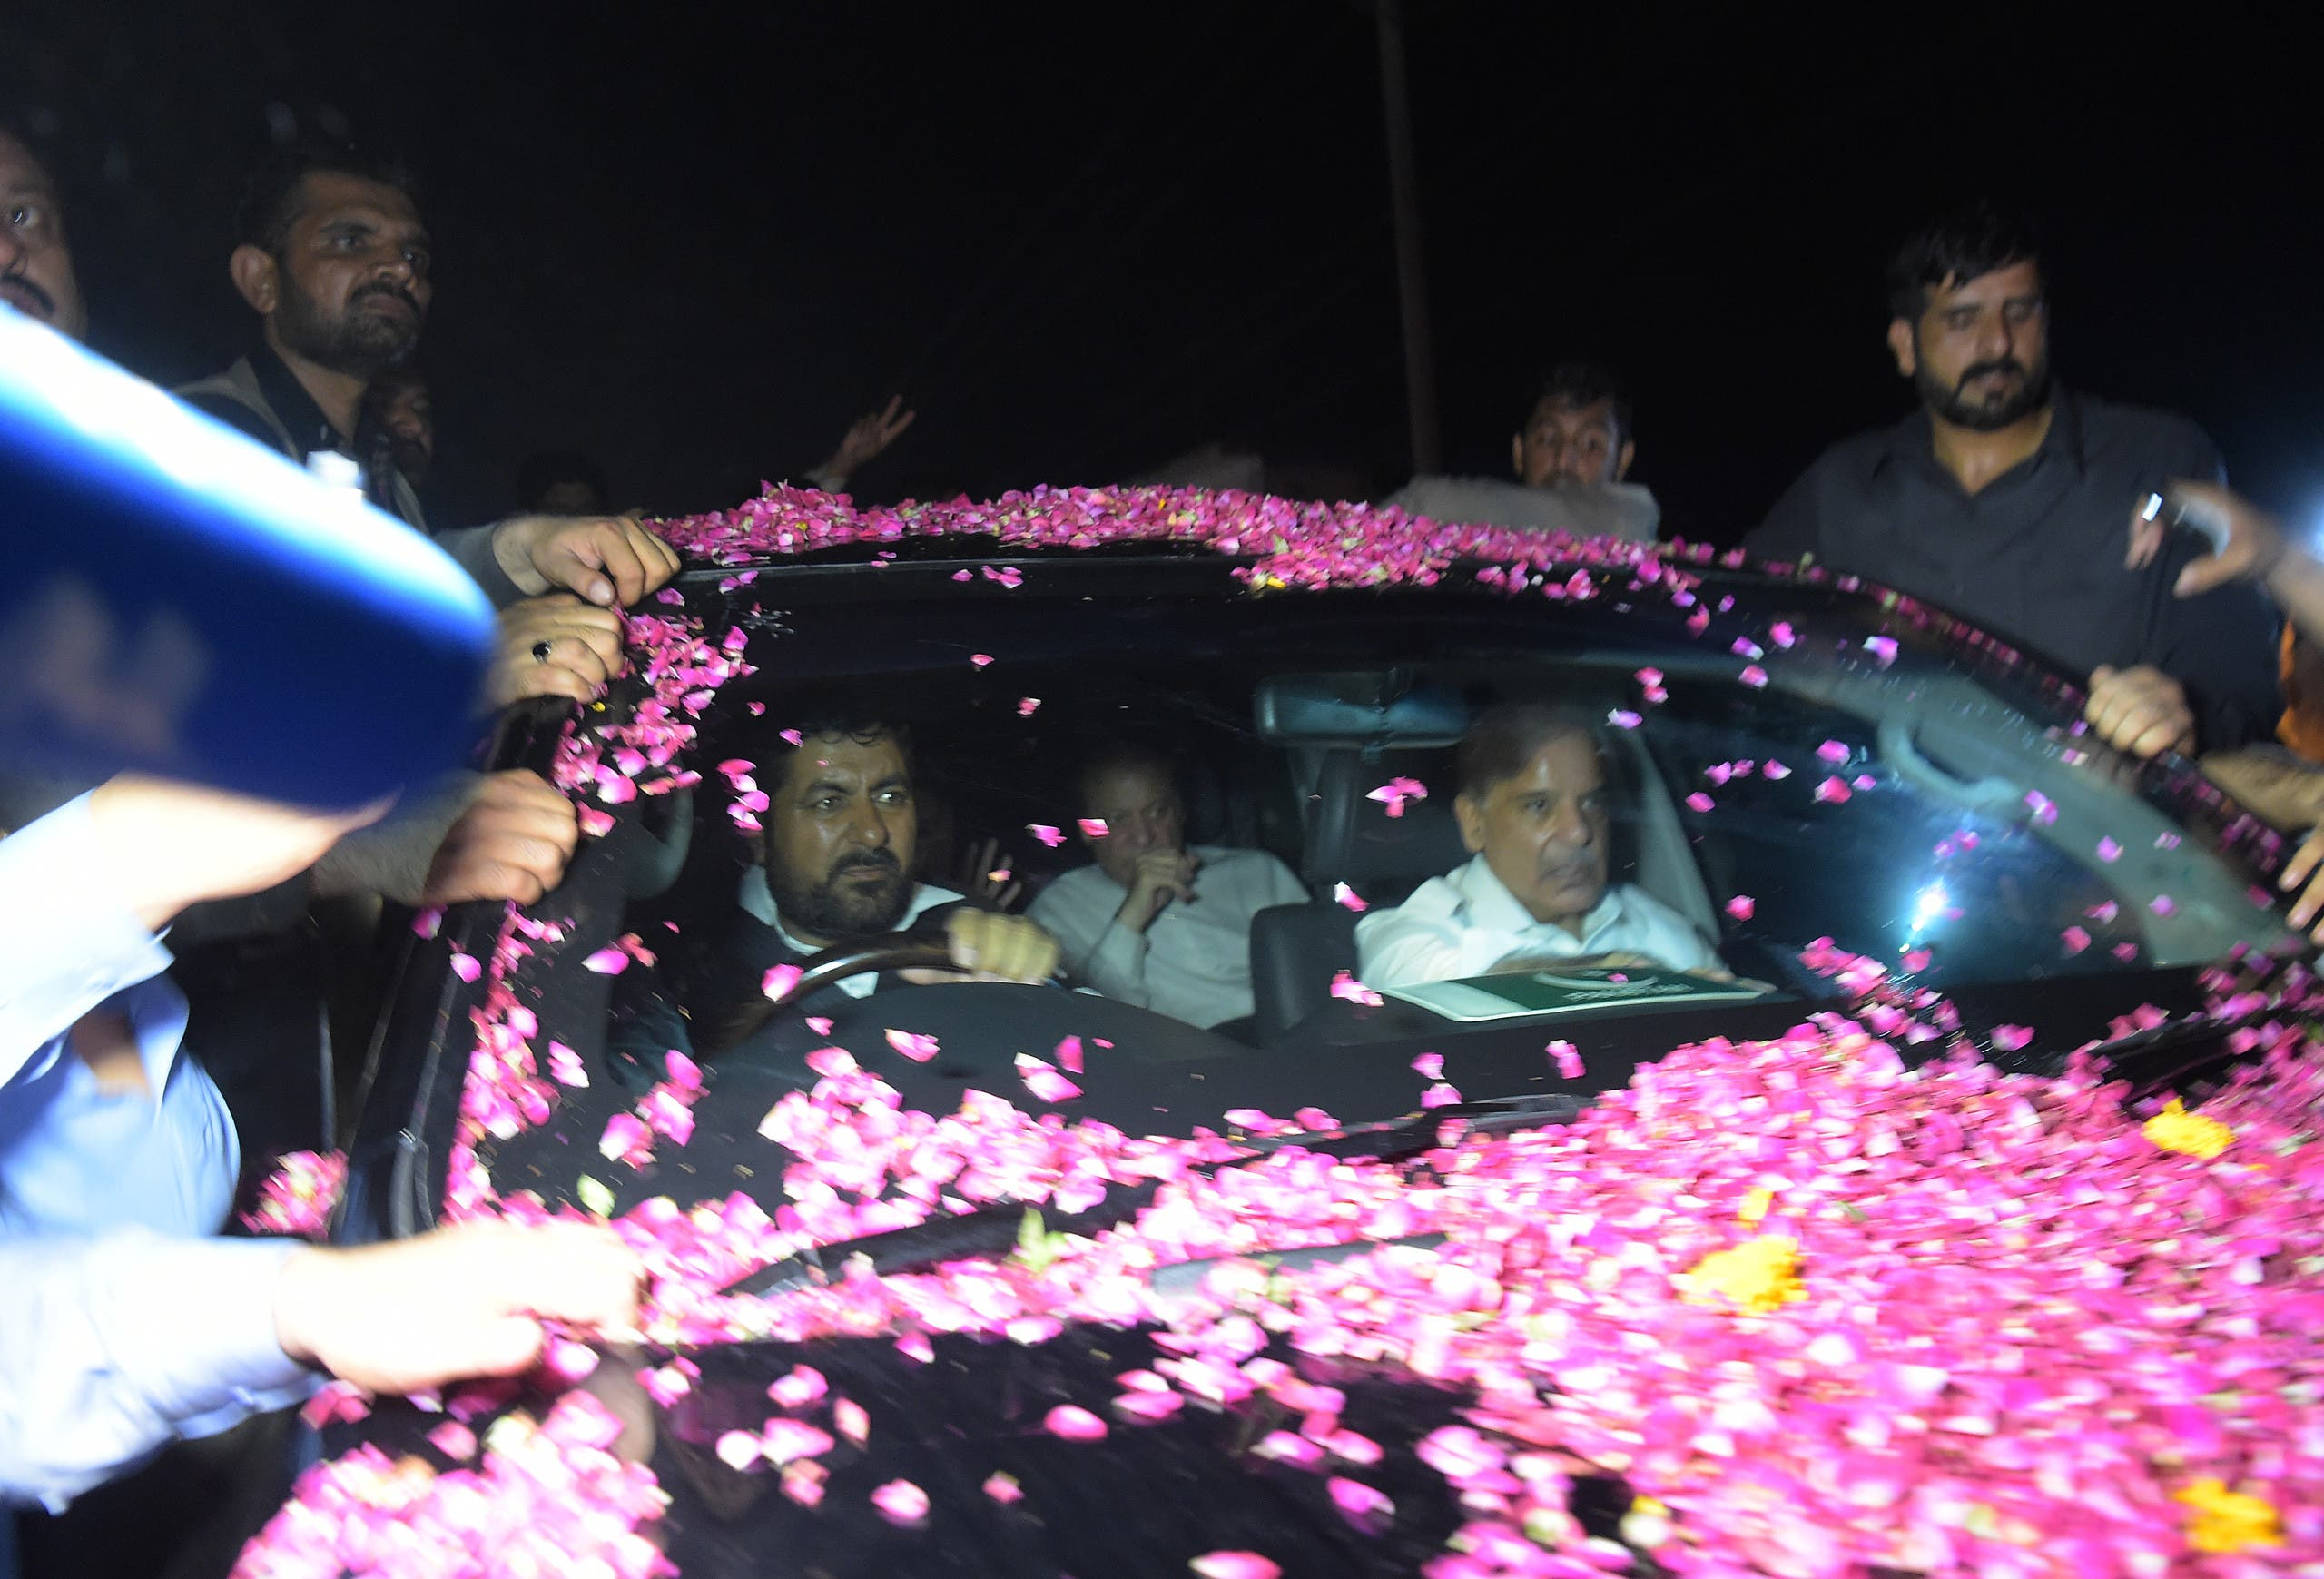 Former Pakistani Prime Minister Nawaz Sharif (C/ back) sits in a vehicle alongside his younger brother Shahbaz Sharif (R) following his release from Adiala prison in Rawalpindi on September 19, 2018.